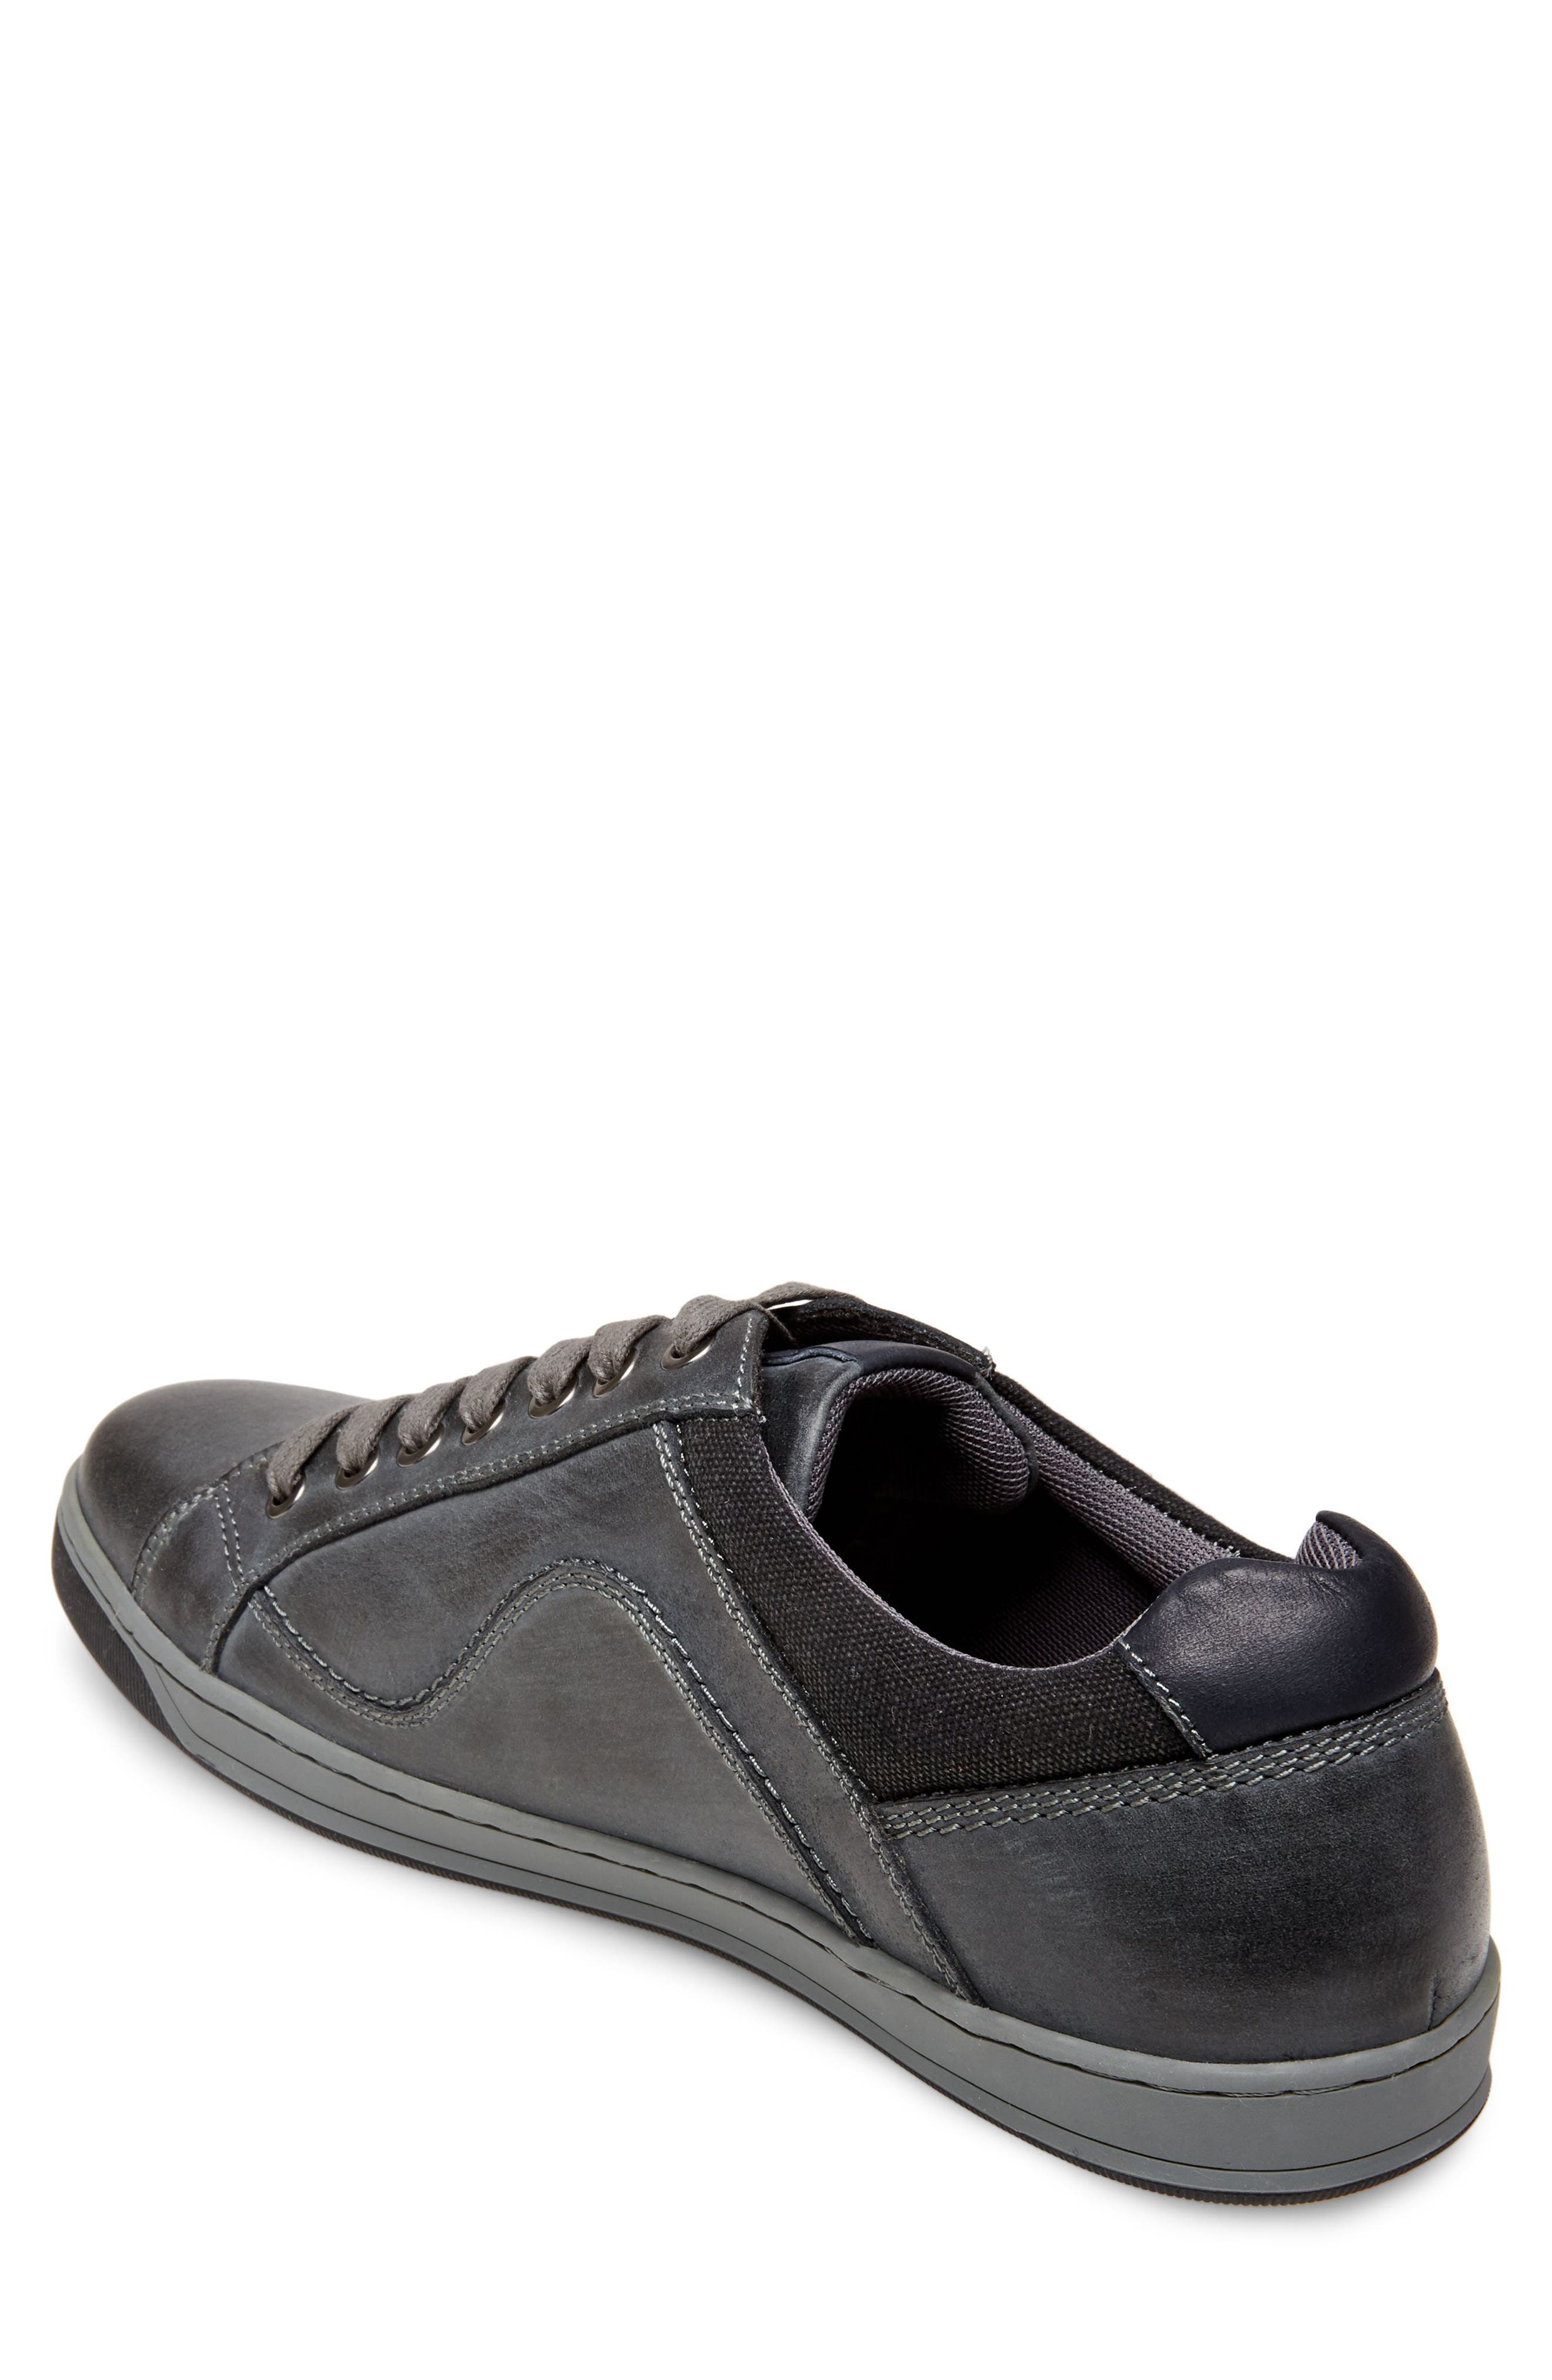 Chater Low Top Sneaker,                             Alternate thumbnail 3, color,